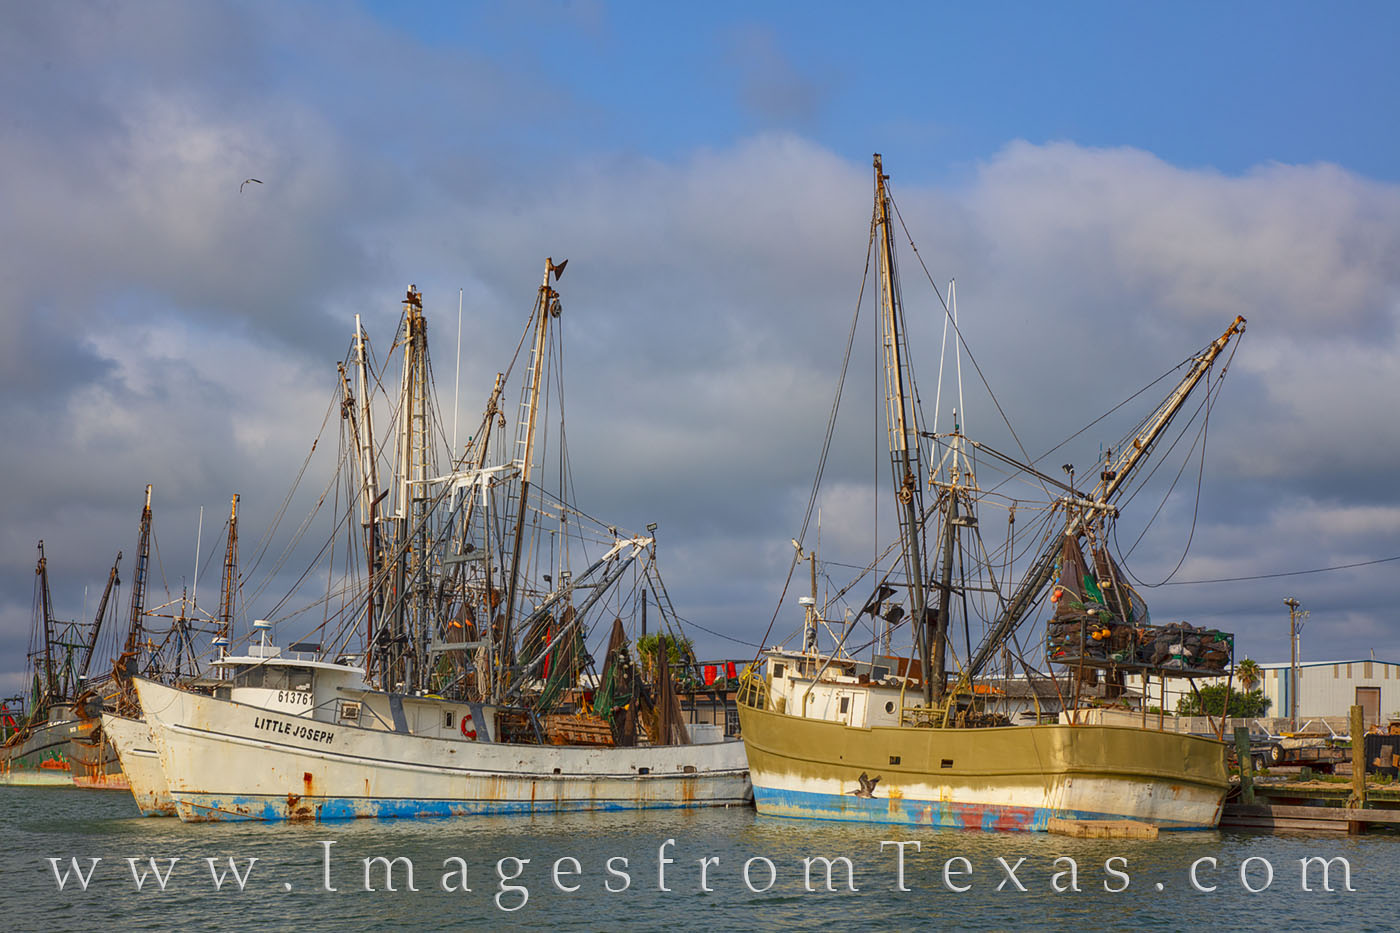 shrimp boats, texas coast, port isabel, south padre, afternoon, seagull, birds, gulf of mexico, fishing, photo